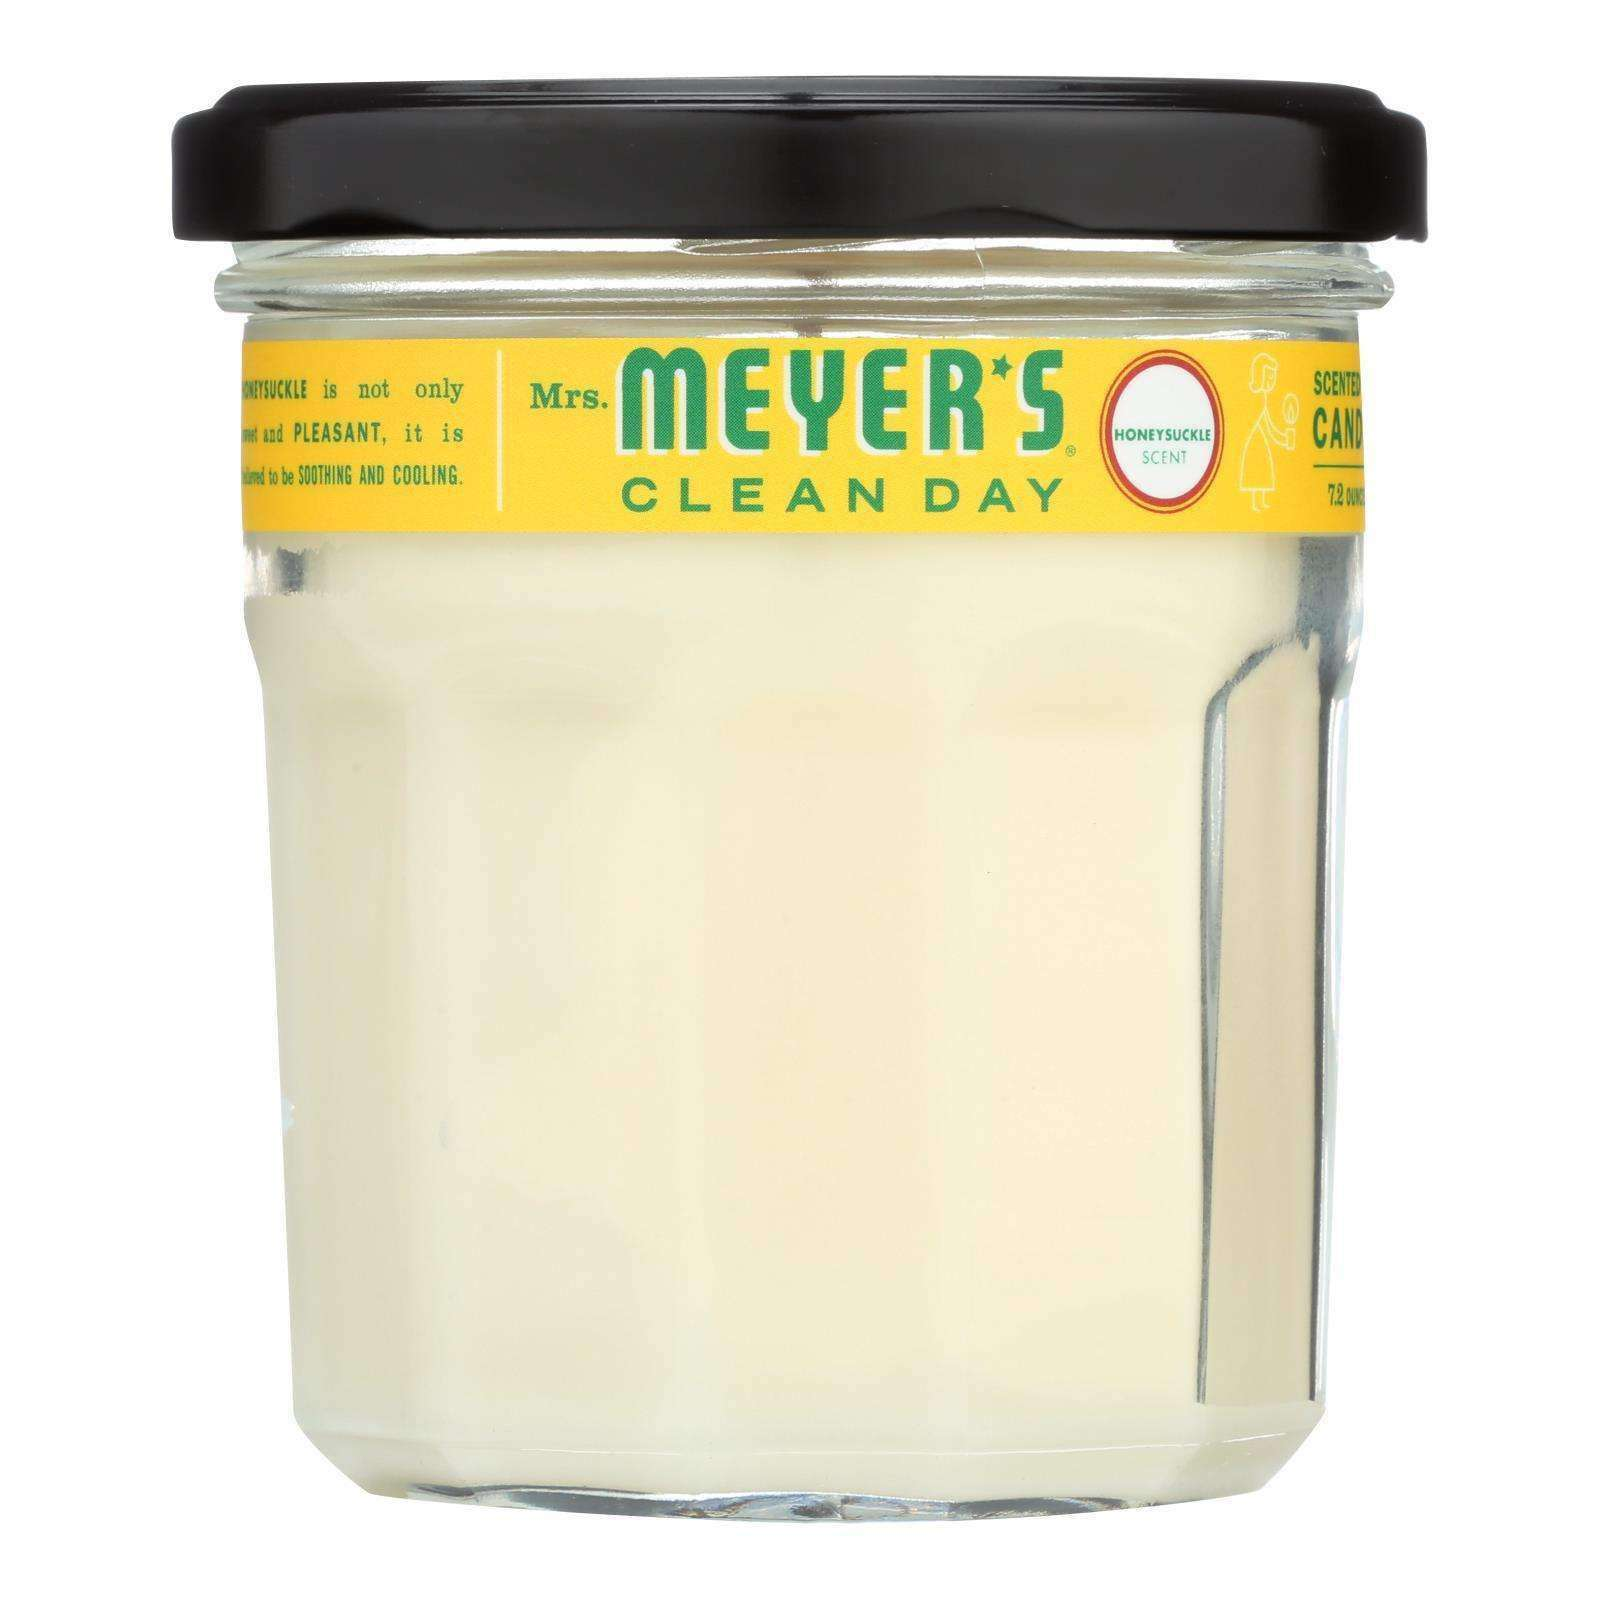 Mrs. Meyer's Clean Day - Soy Candle - Honeysuckle - Case Of 6 - 7.2 Oz - BeeGreen